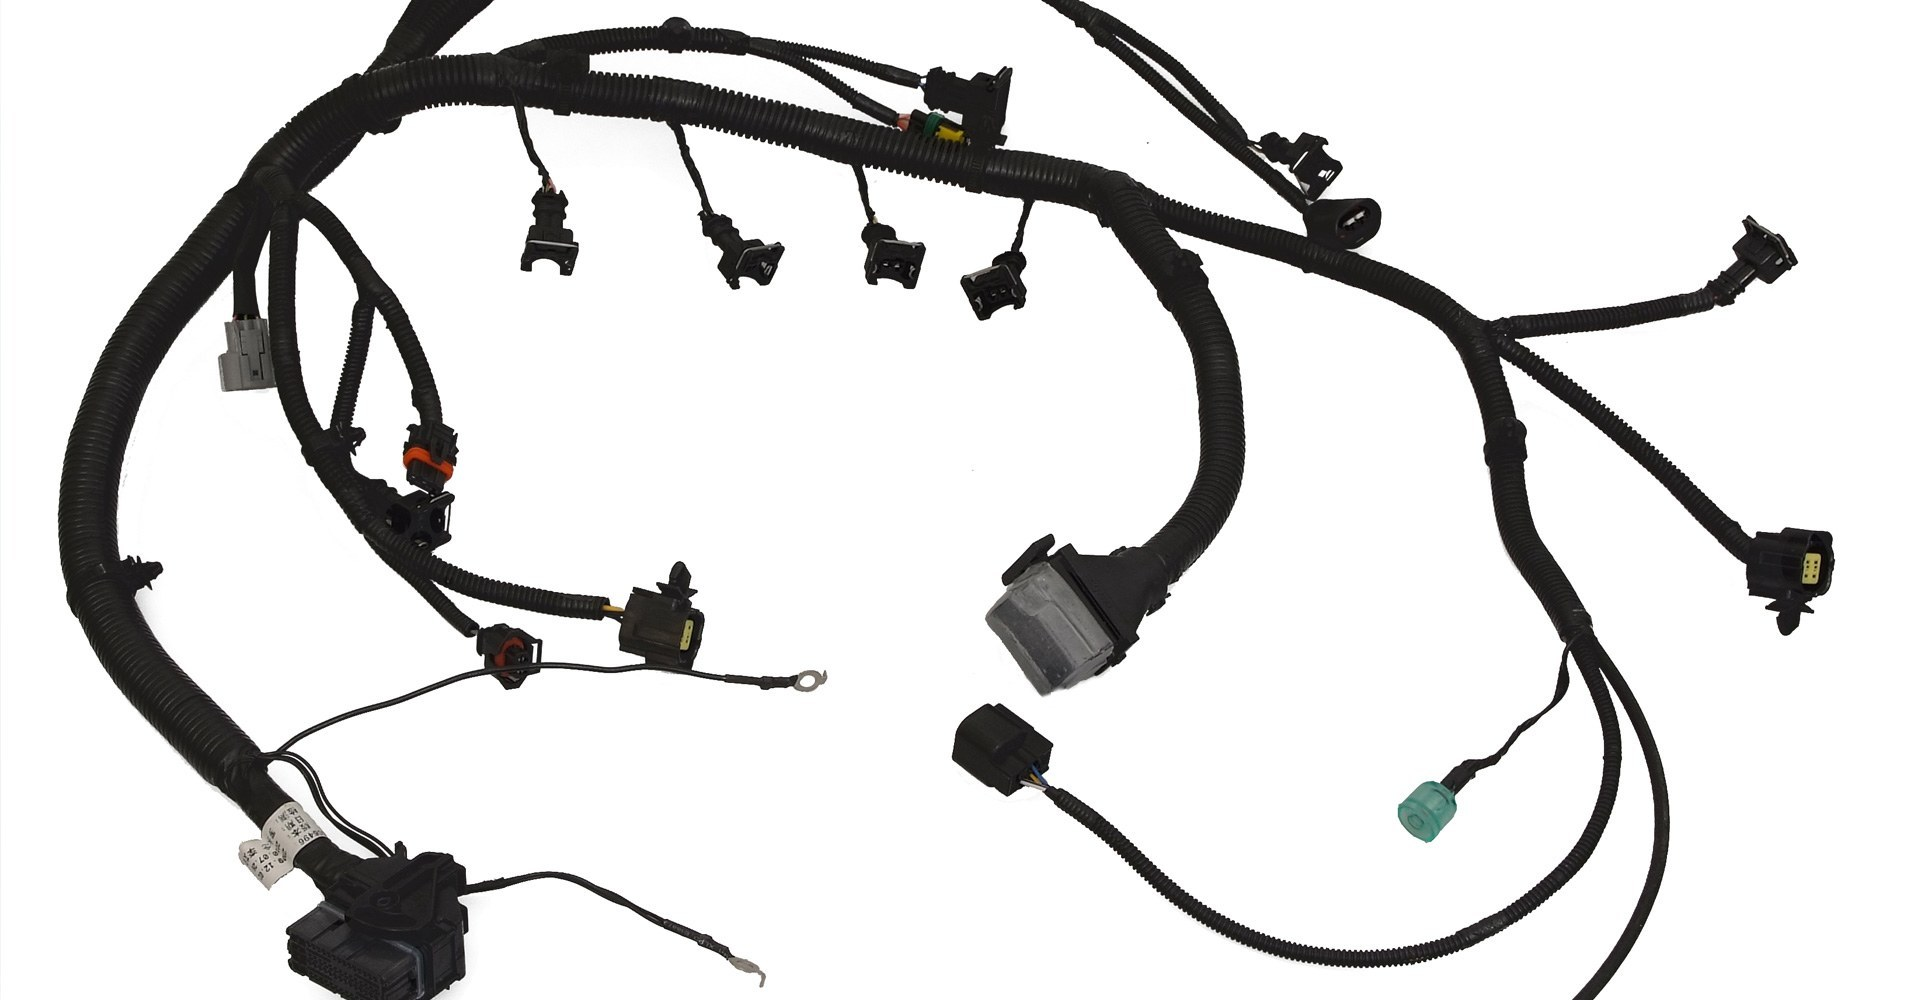 wireharness automotive wire harness products lorom automotive wiring harness at panicattacktreatment.co